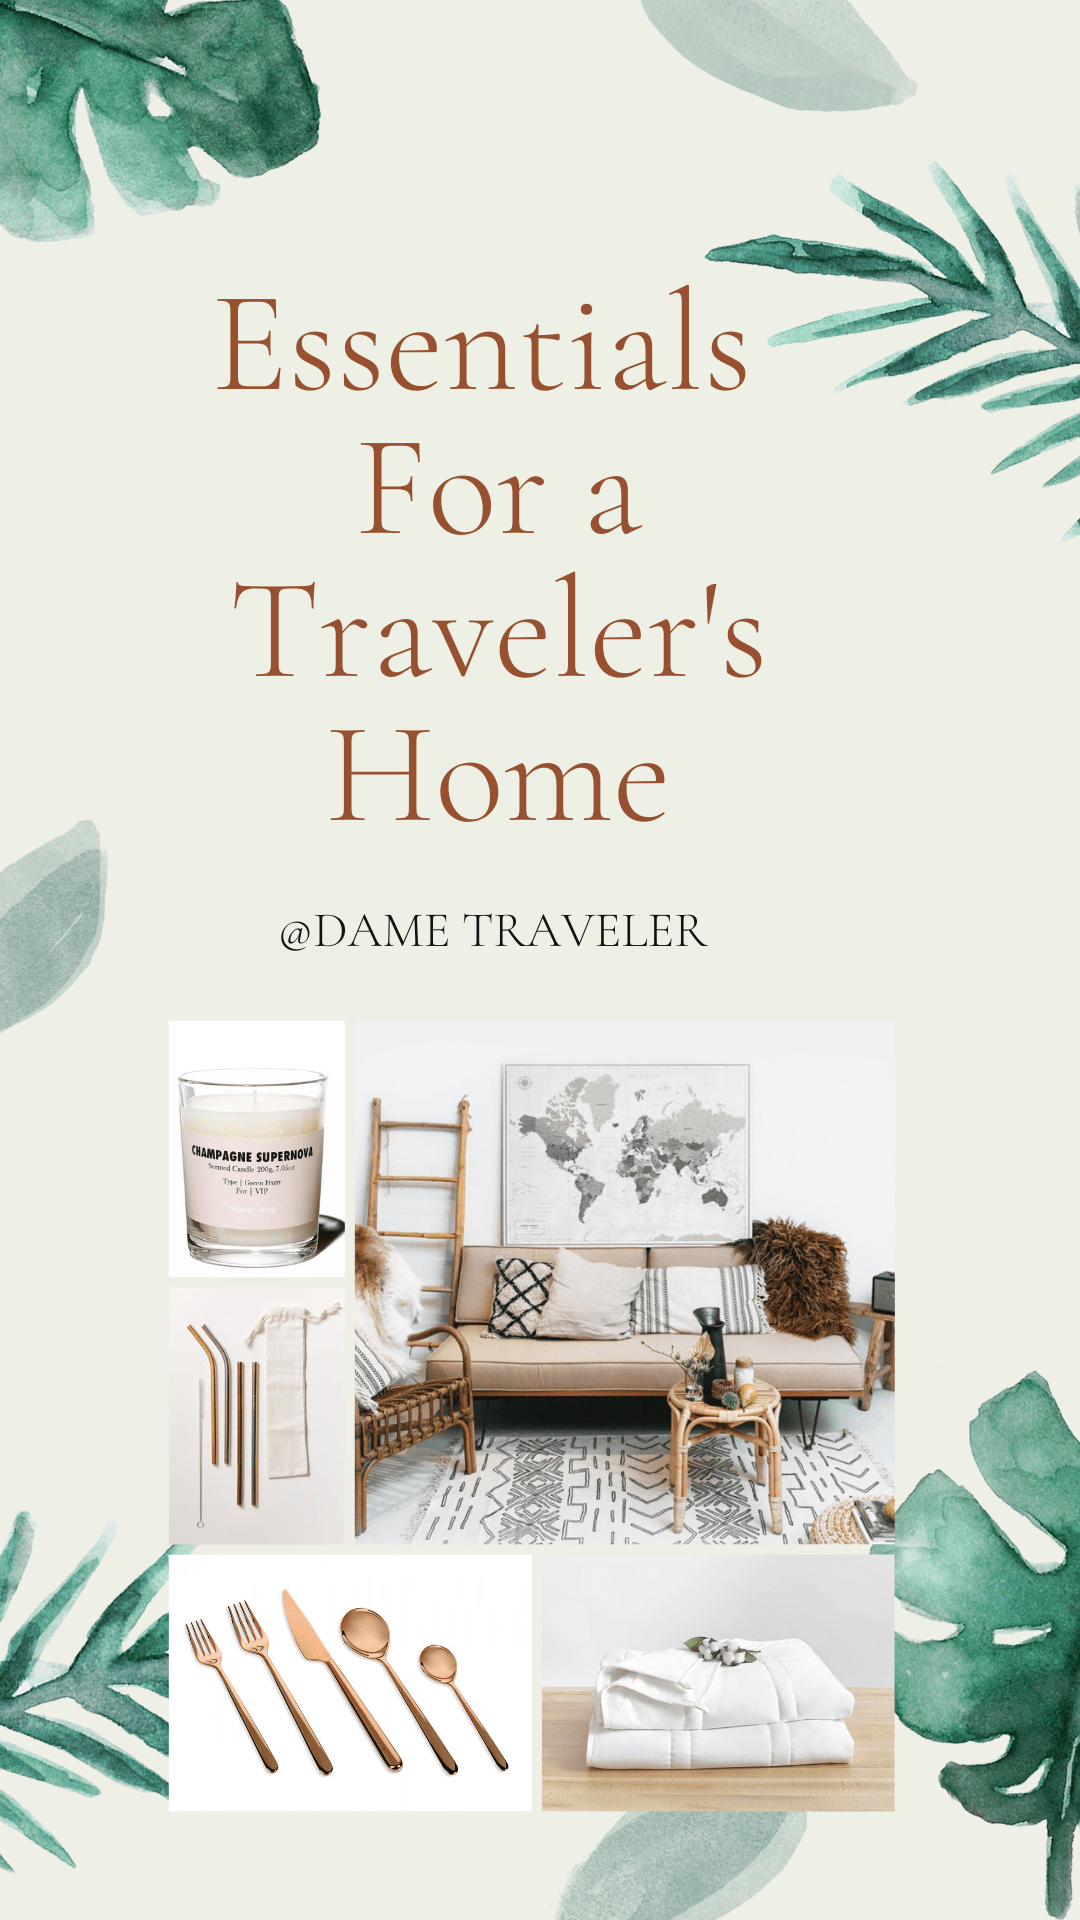 Essentials For a Travelers Home